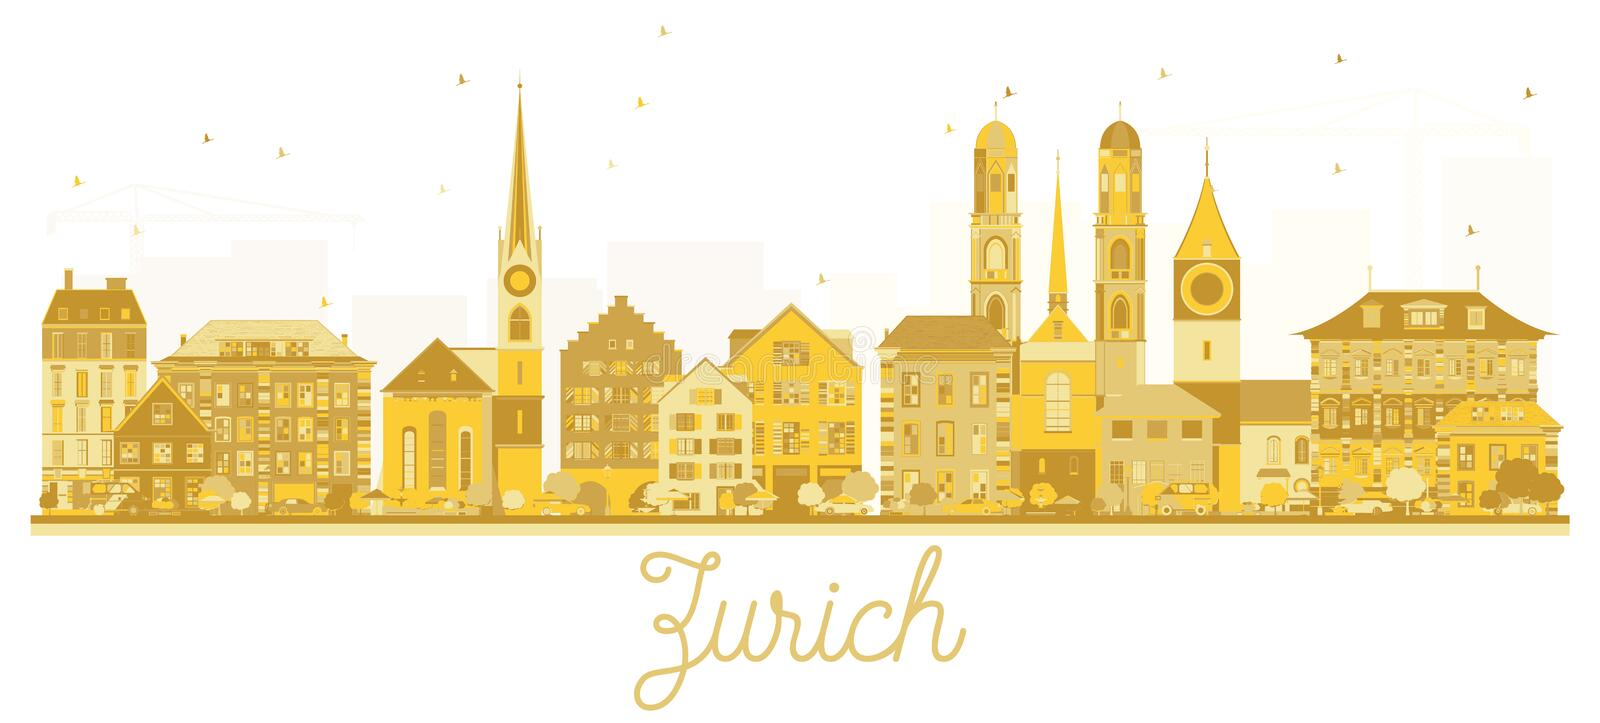 Zurich Switzerland City skyline golden silhouette. vector illustration